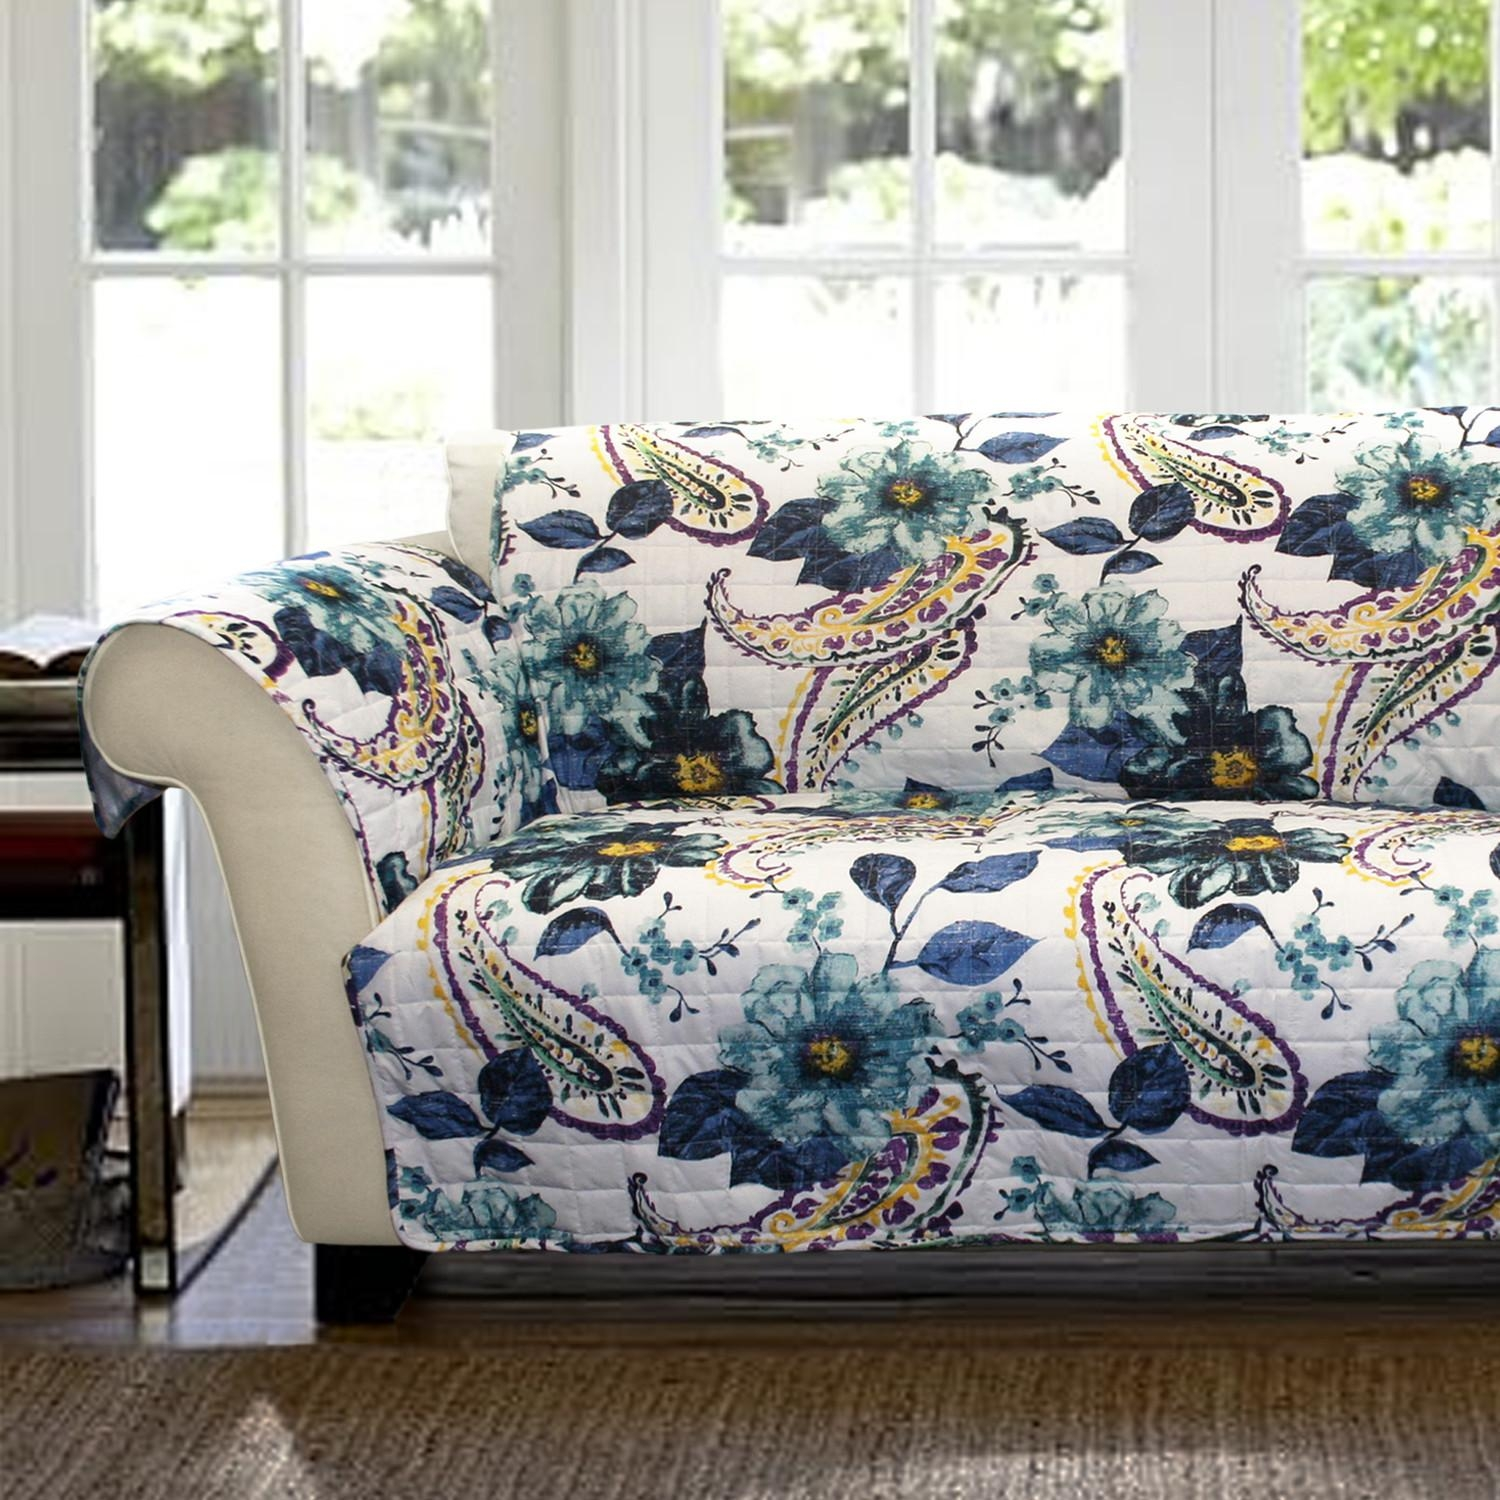 Best Modest Floral Sofas And Chairs #1658 Throughout Floral Sofas And Chairs (View 8 of 20)